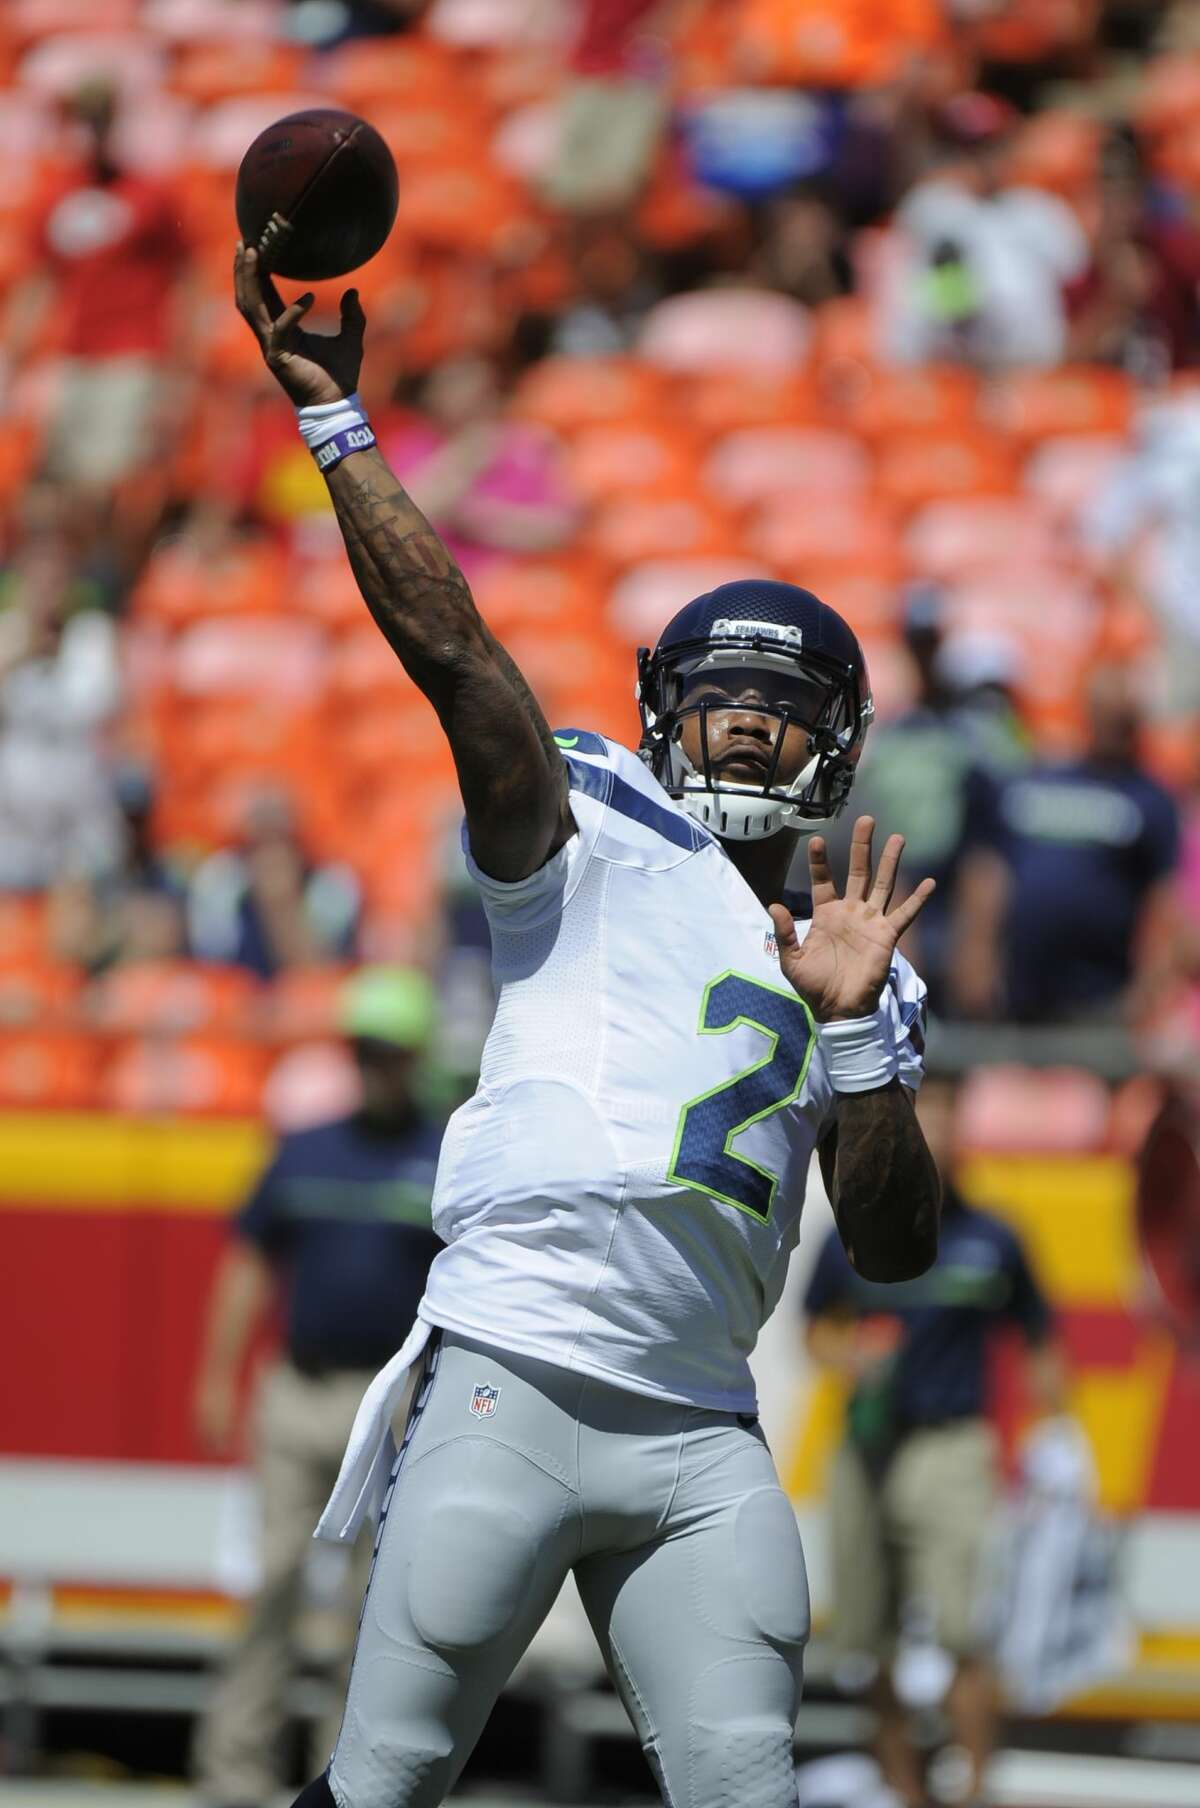 Seattle Seahawks quarterback Trevone Boykin (2) warms up before an NFL preseason football game against the Kansas City Chiefs in Kansas City, Mo., Saturday, Aug. 13, 2016. (AP Photo/Ed Zurga)